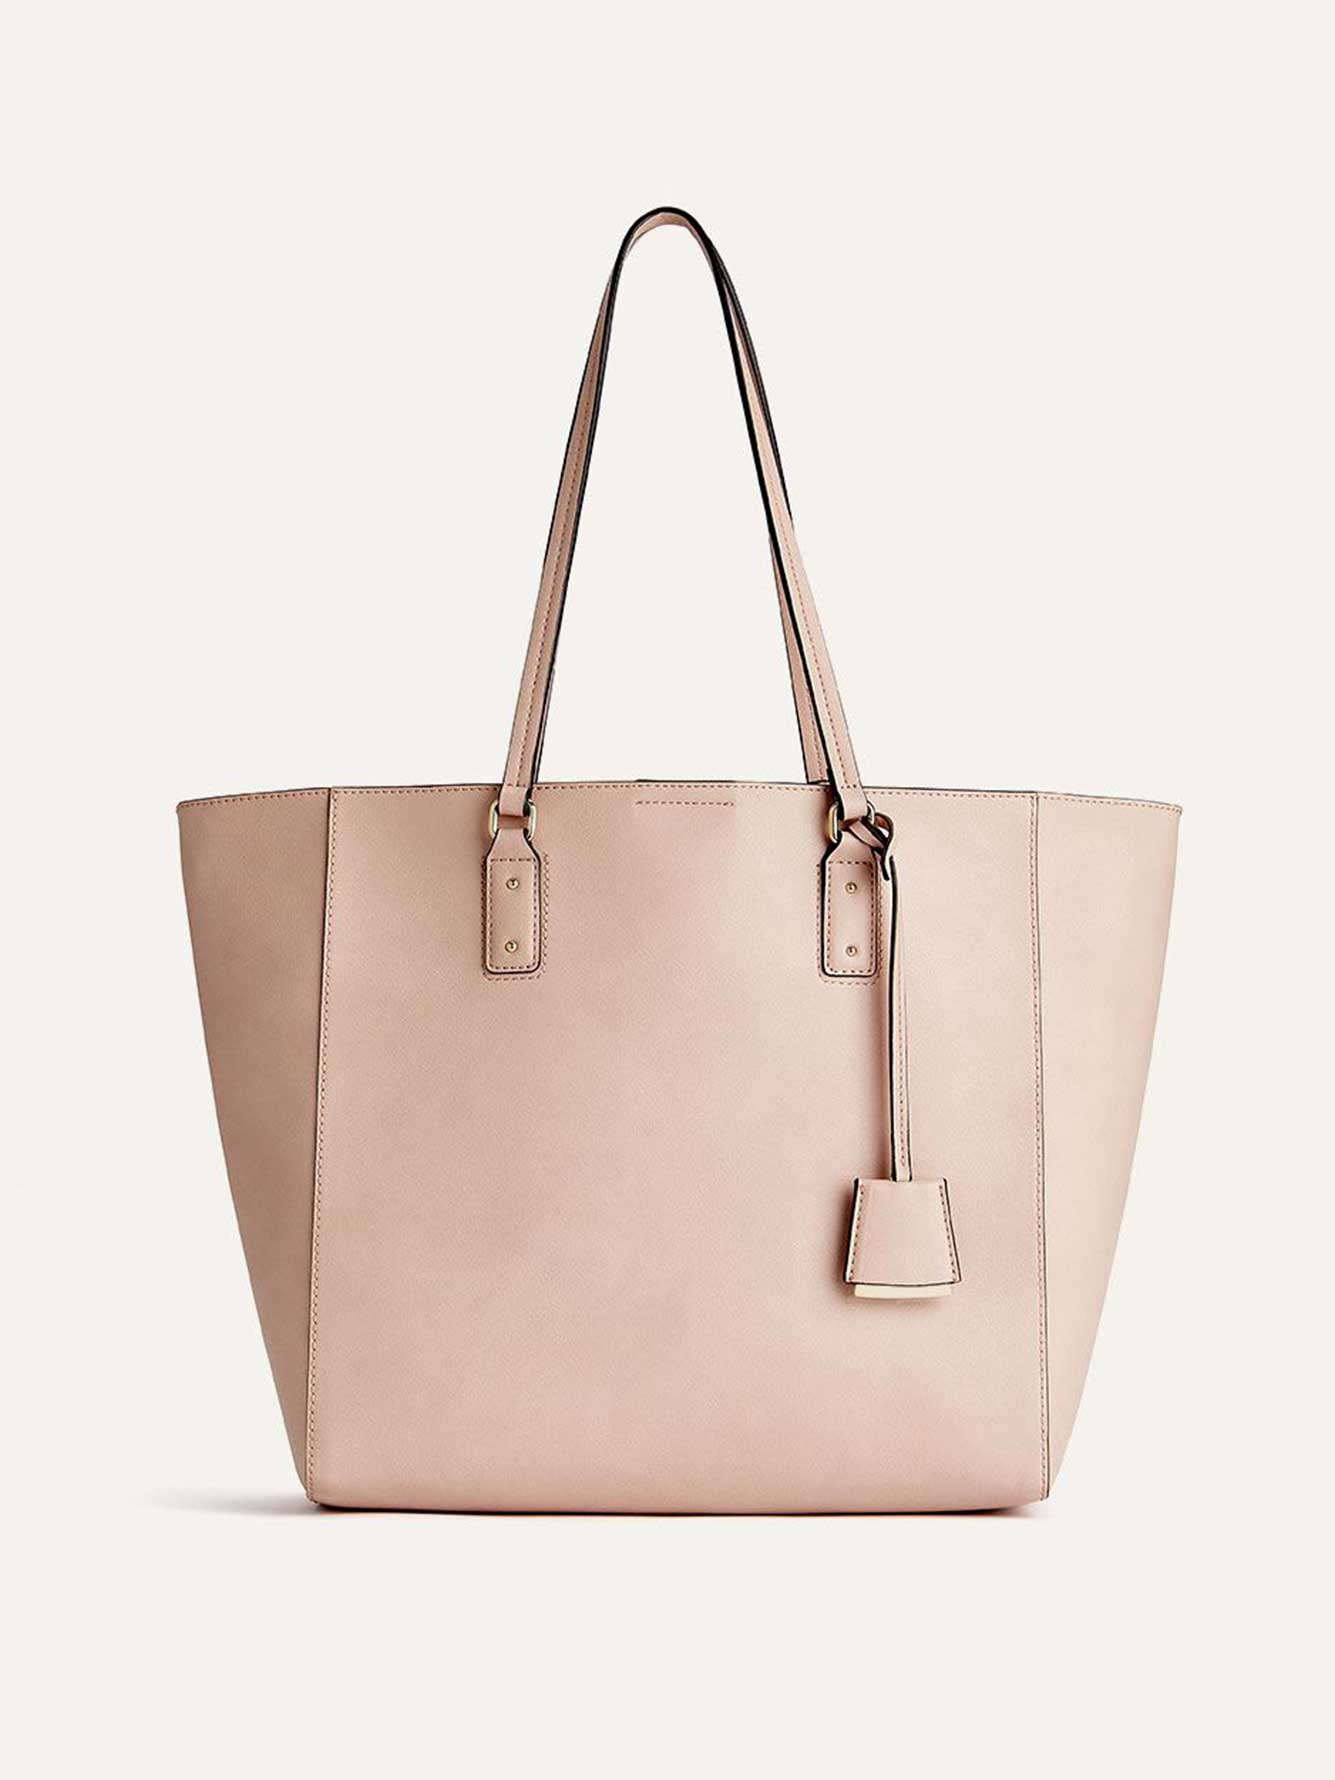 Tote Bag with Luggage Tag - Addition Elle